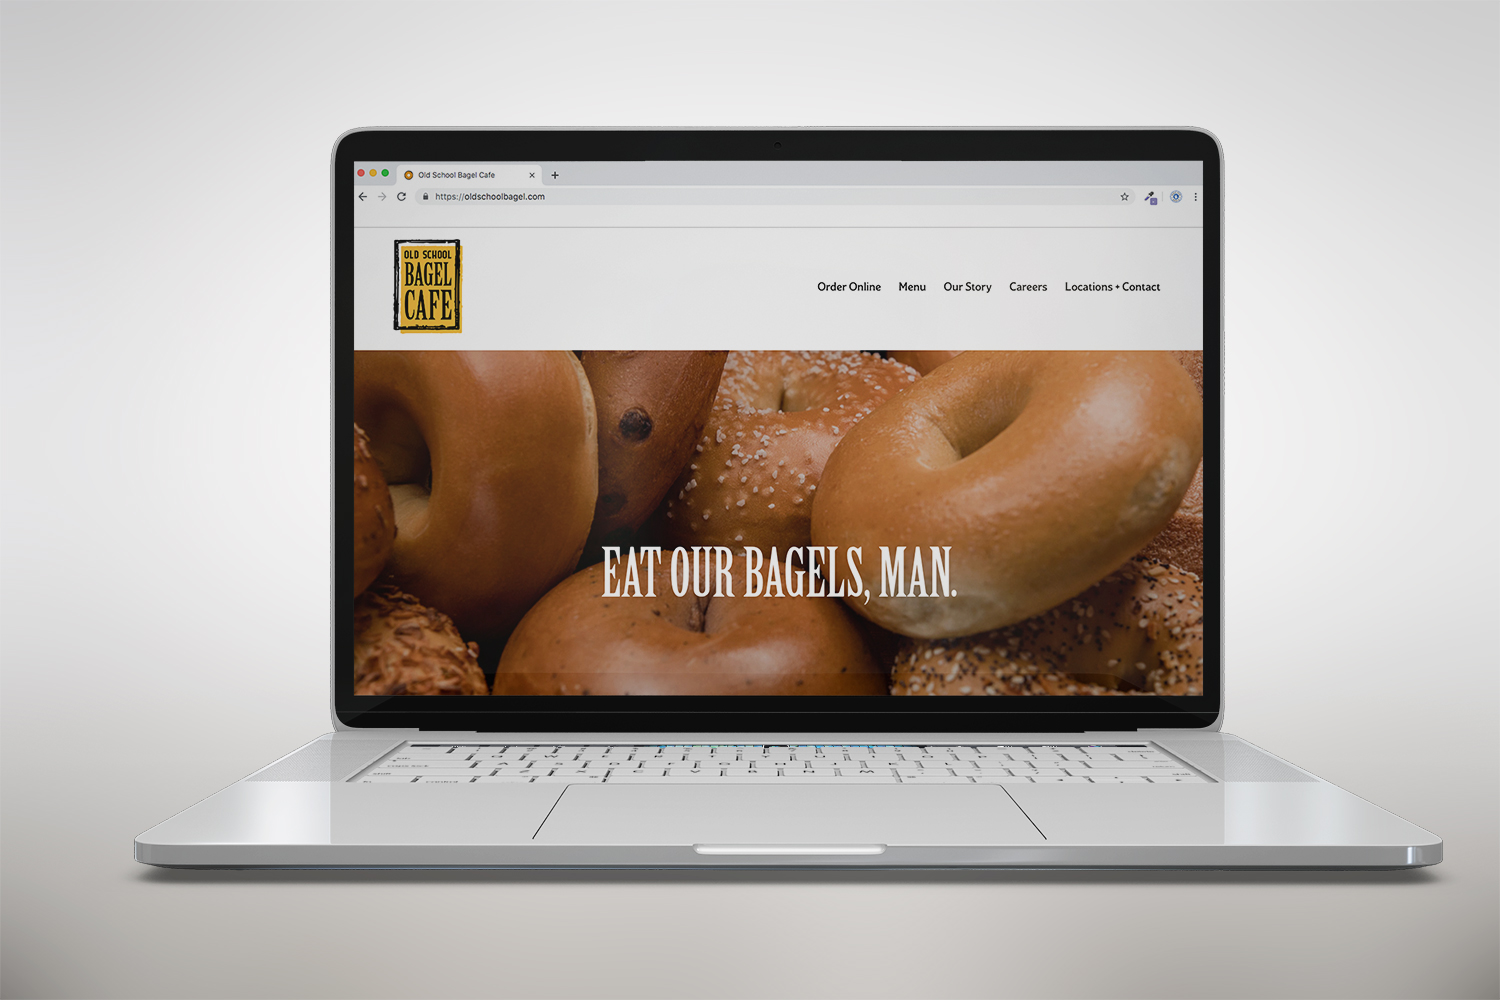 Old School Bagel Cafe website on laptop screen